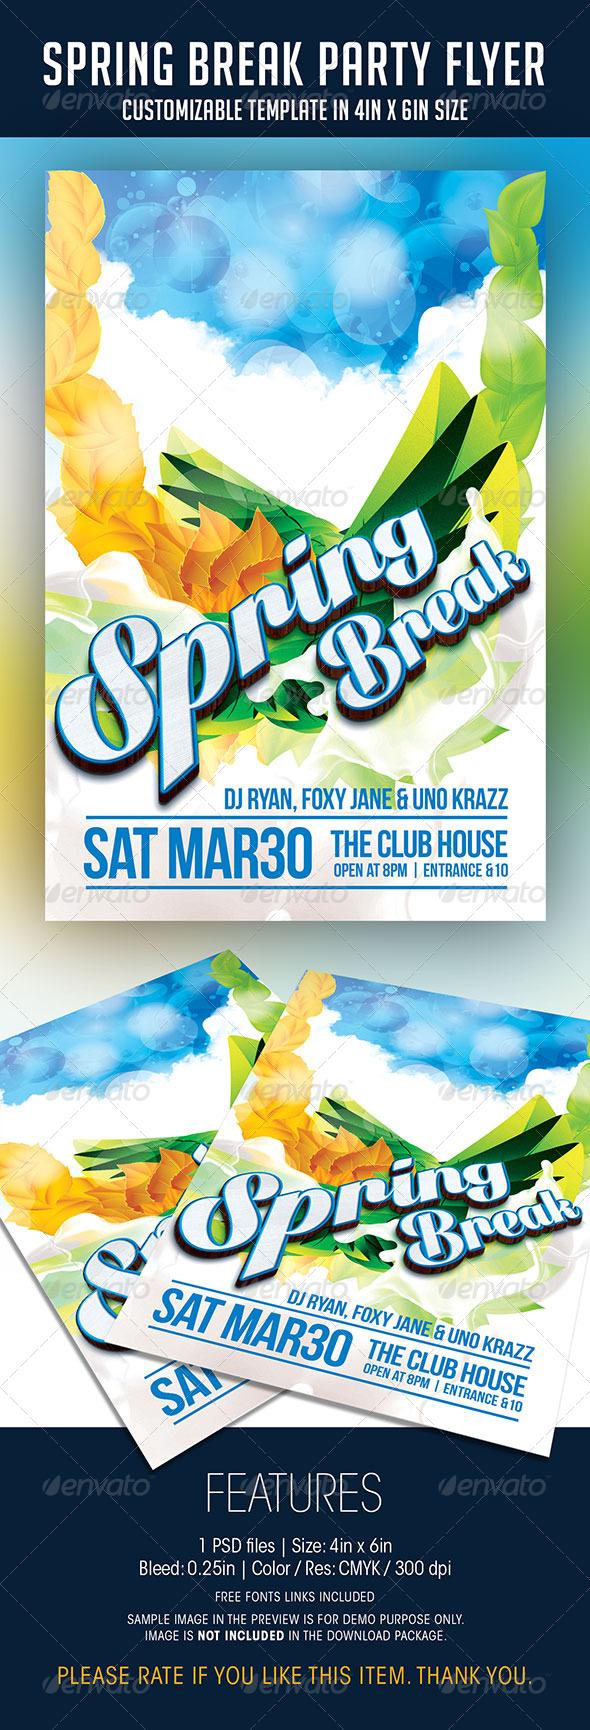 GraphicRiver Spring Break Party Flyer 7233972